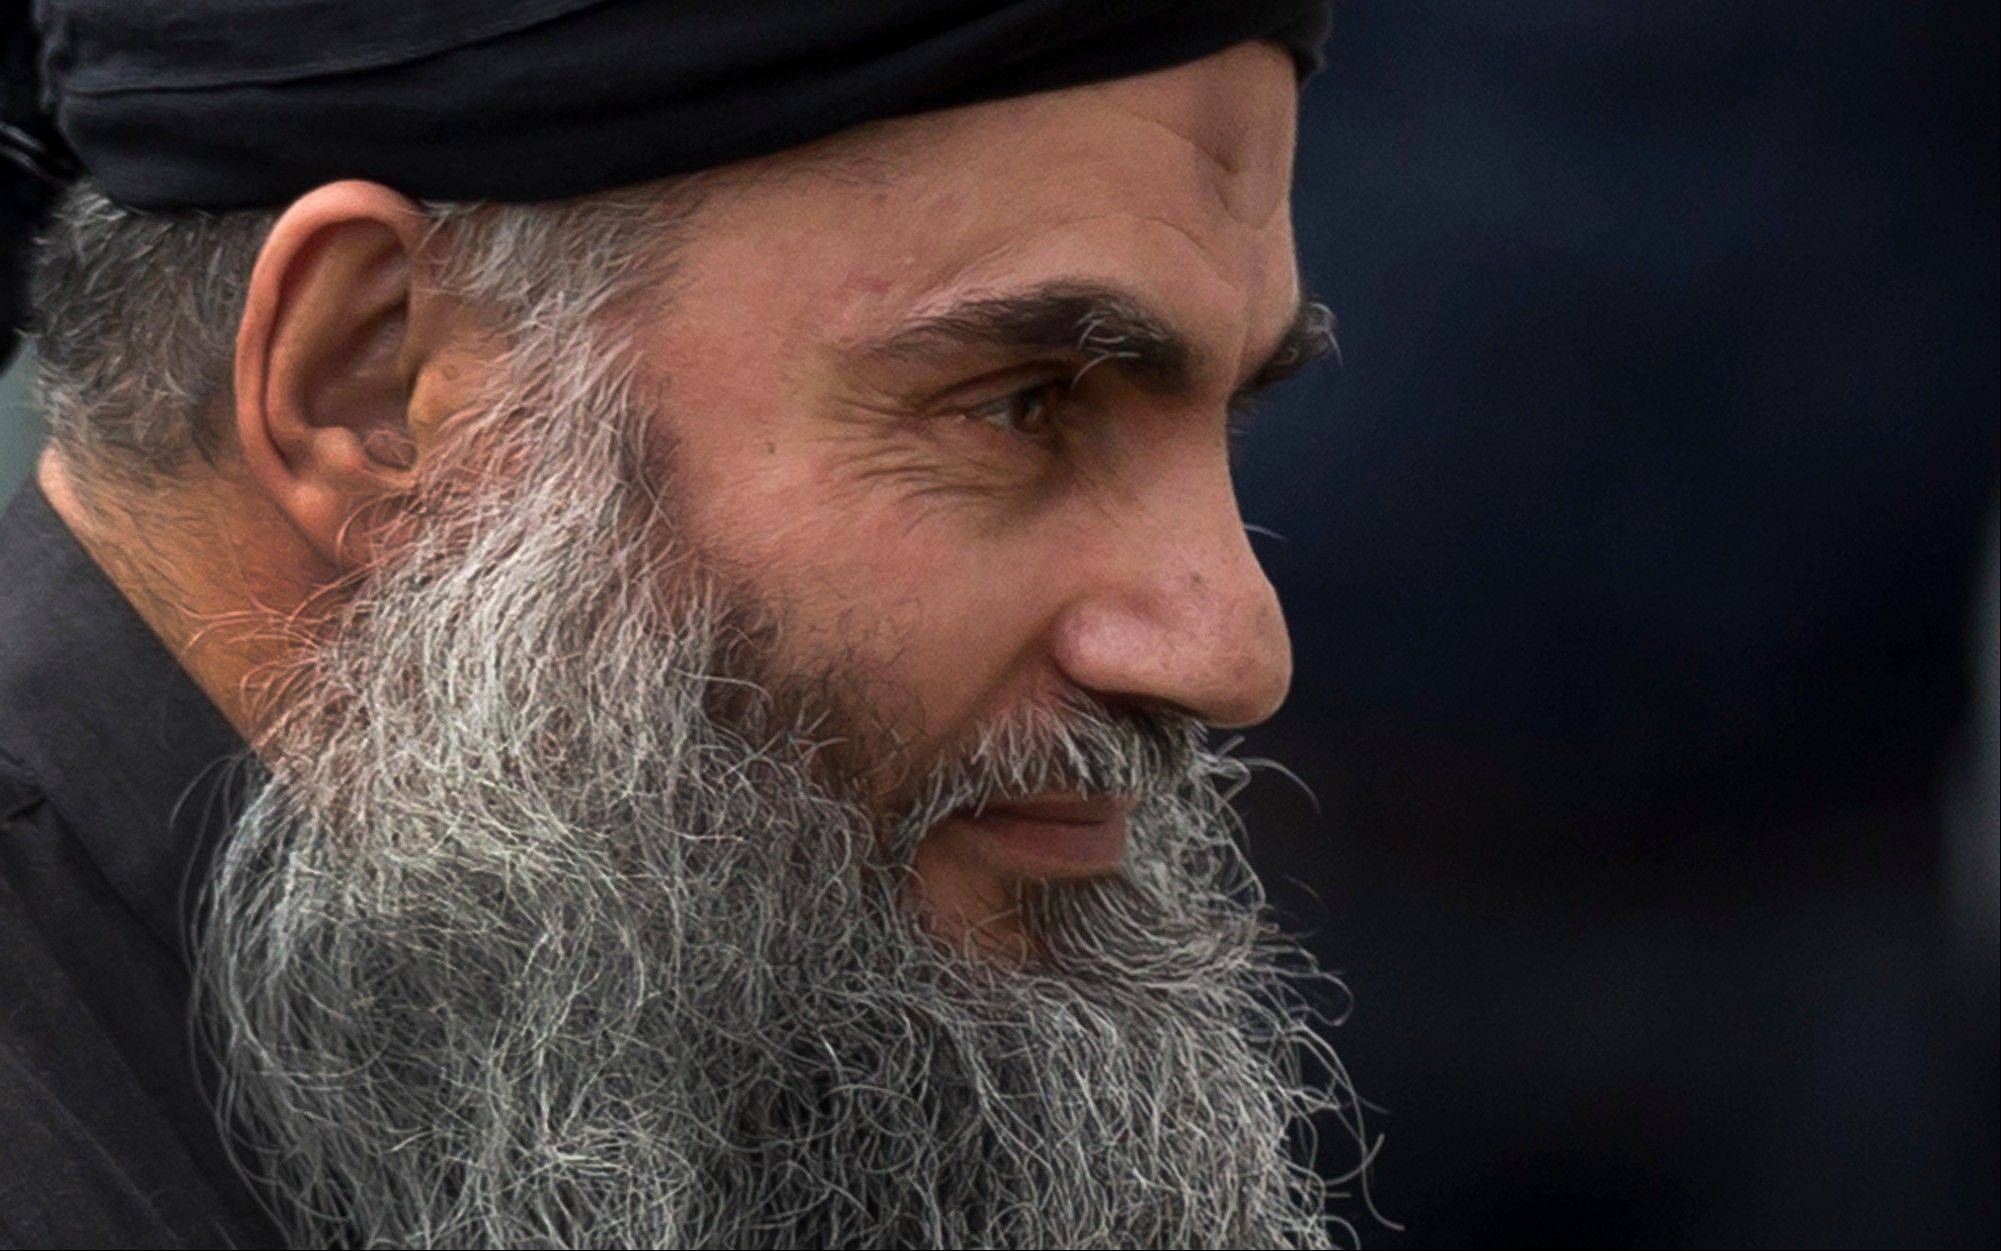 Abu Qatada arrives back at his residence in London after being freed from prison, Tuesday, Nov. 13, 2012. The radical Islamist cleric described by prosecutors as a key al-Qaida operative in Europe was freed from prison Tuesday after a court ruled he cannot be deported from Britain to Jordan to face terrorism charges.